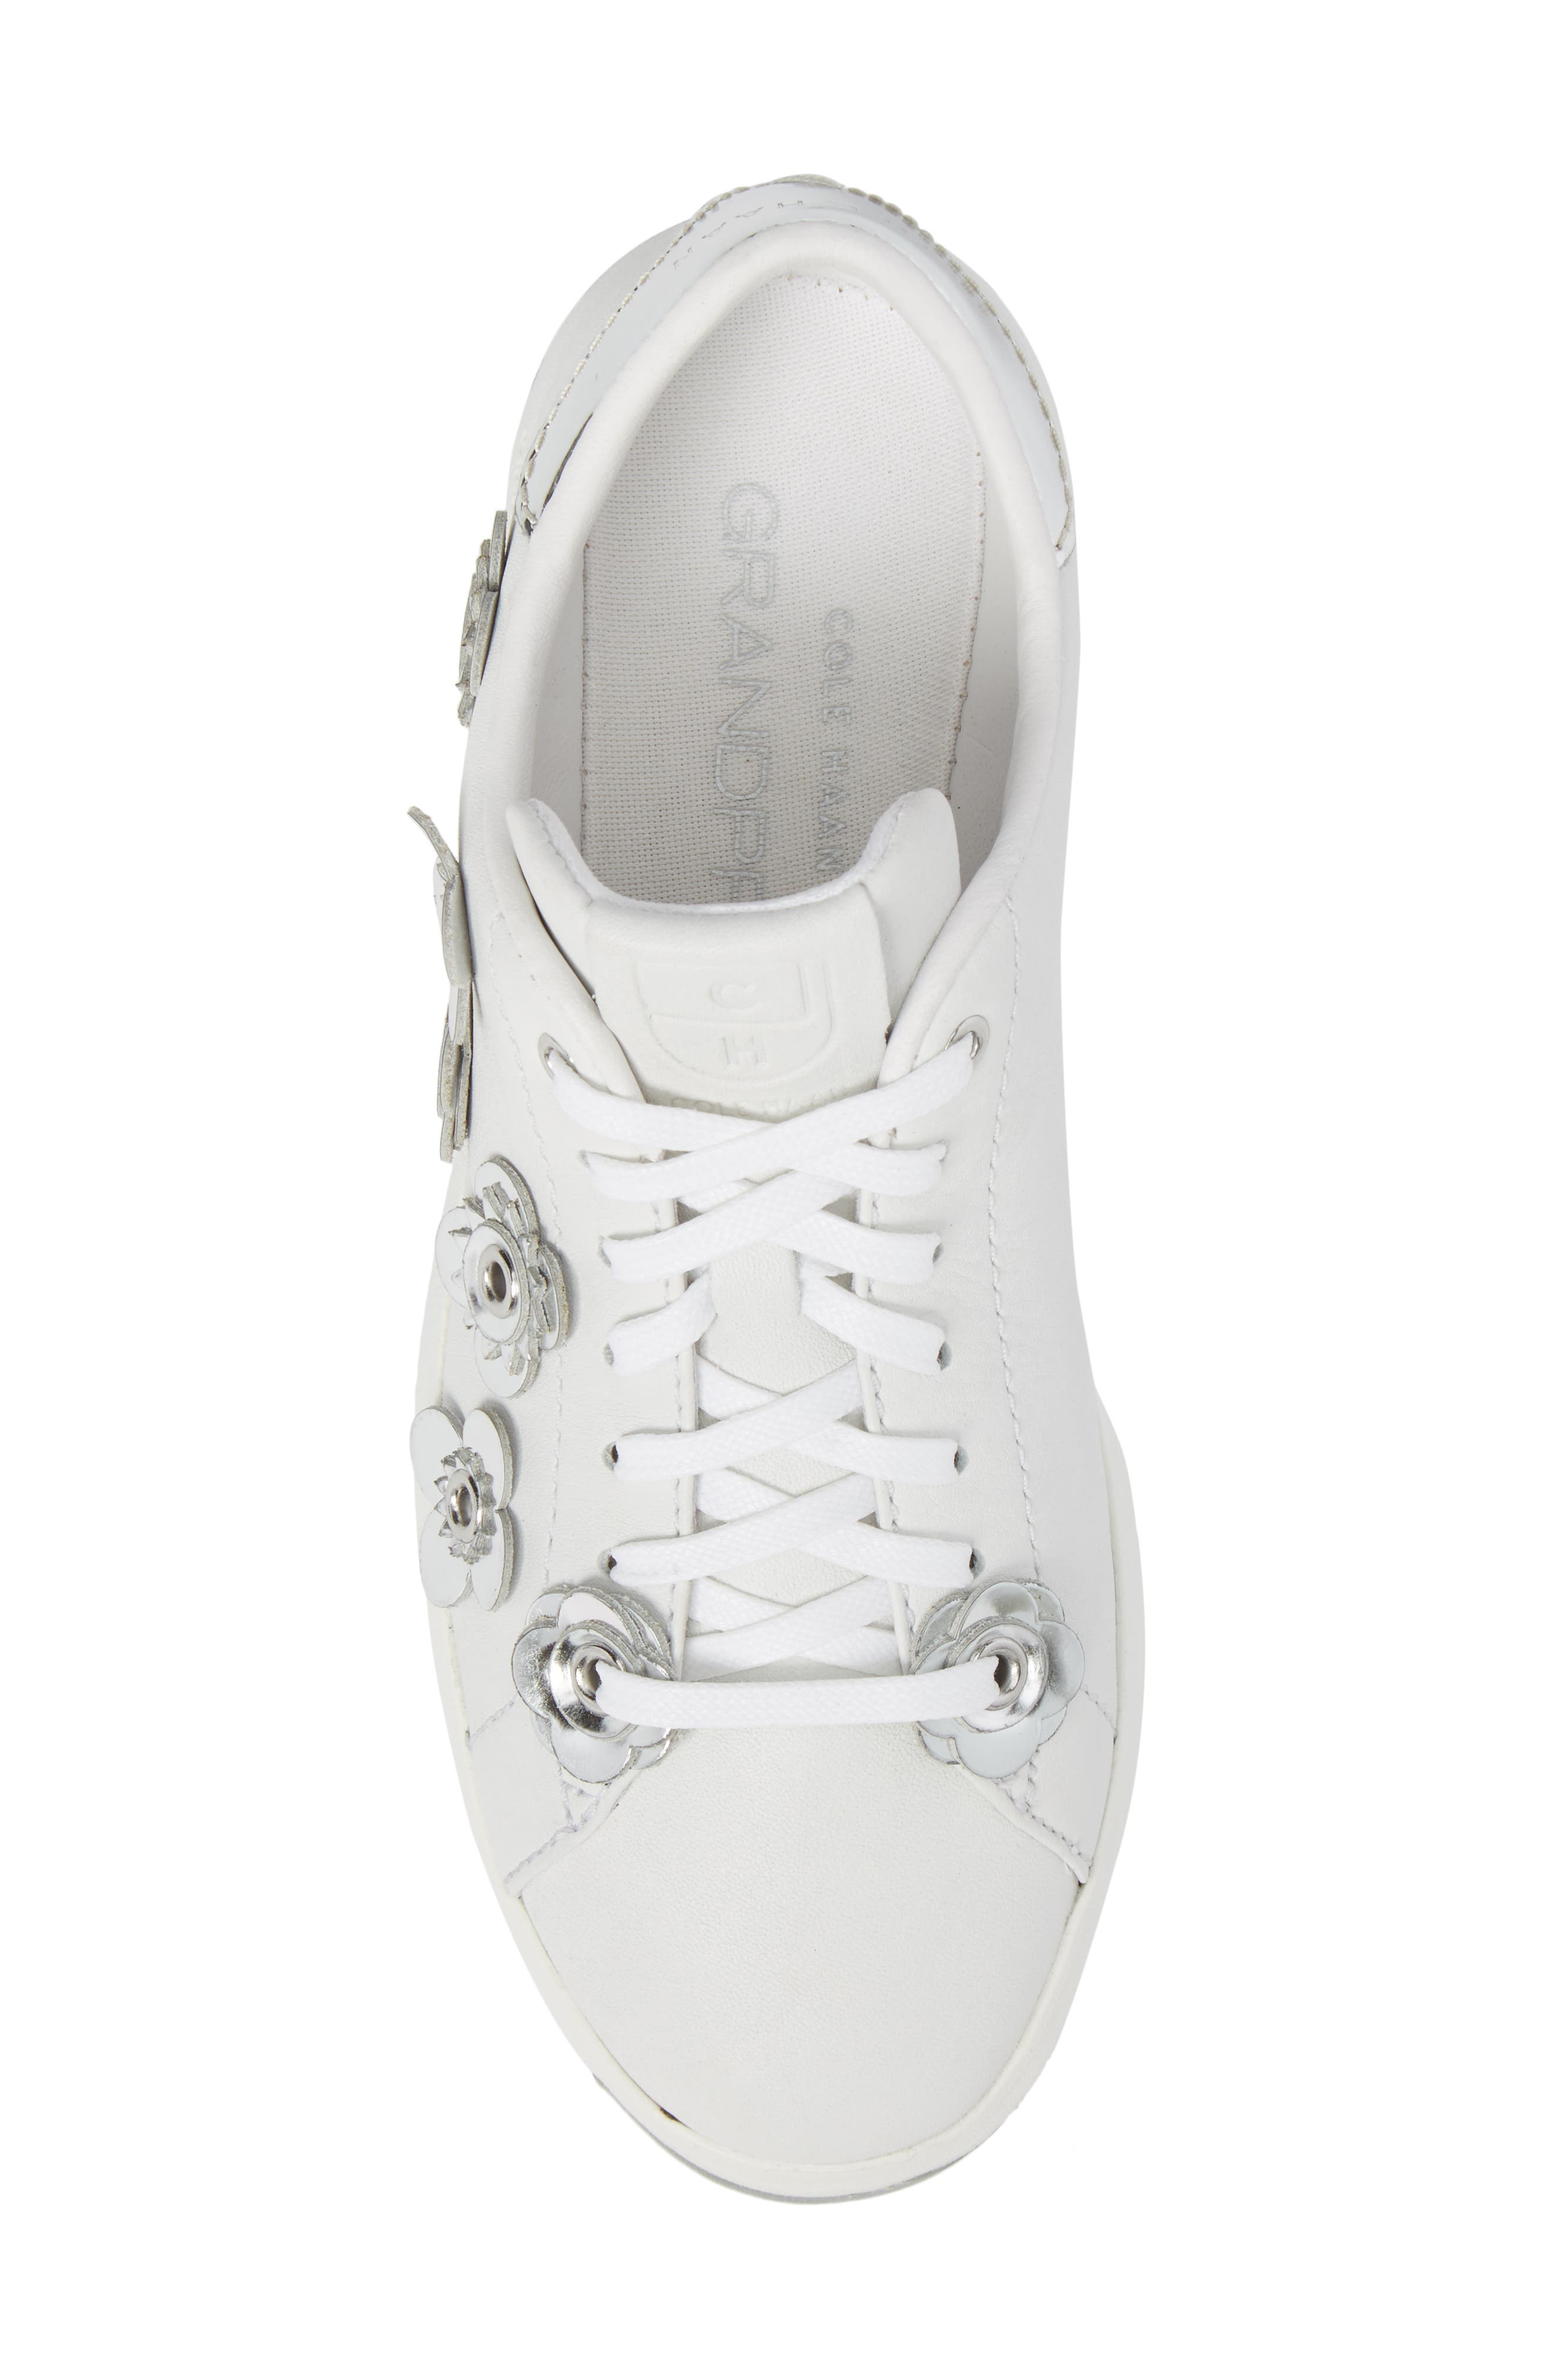 GrandPro Tennis Sneaker,                             Alternate thumbnail 5, color,                             White Leather